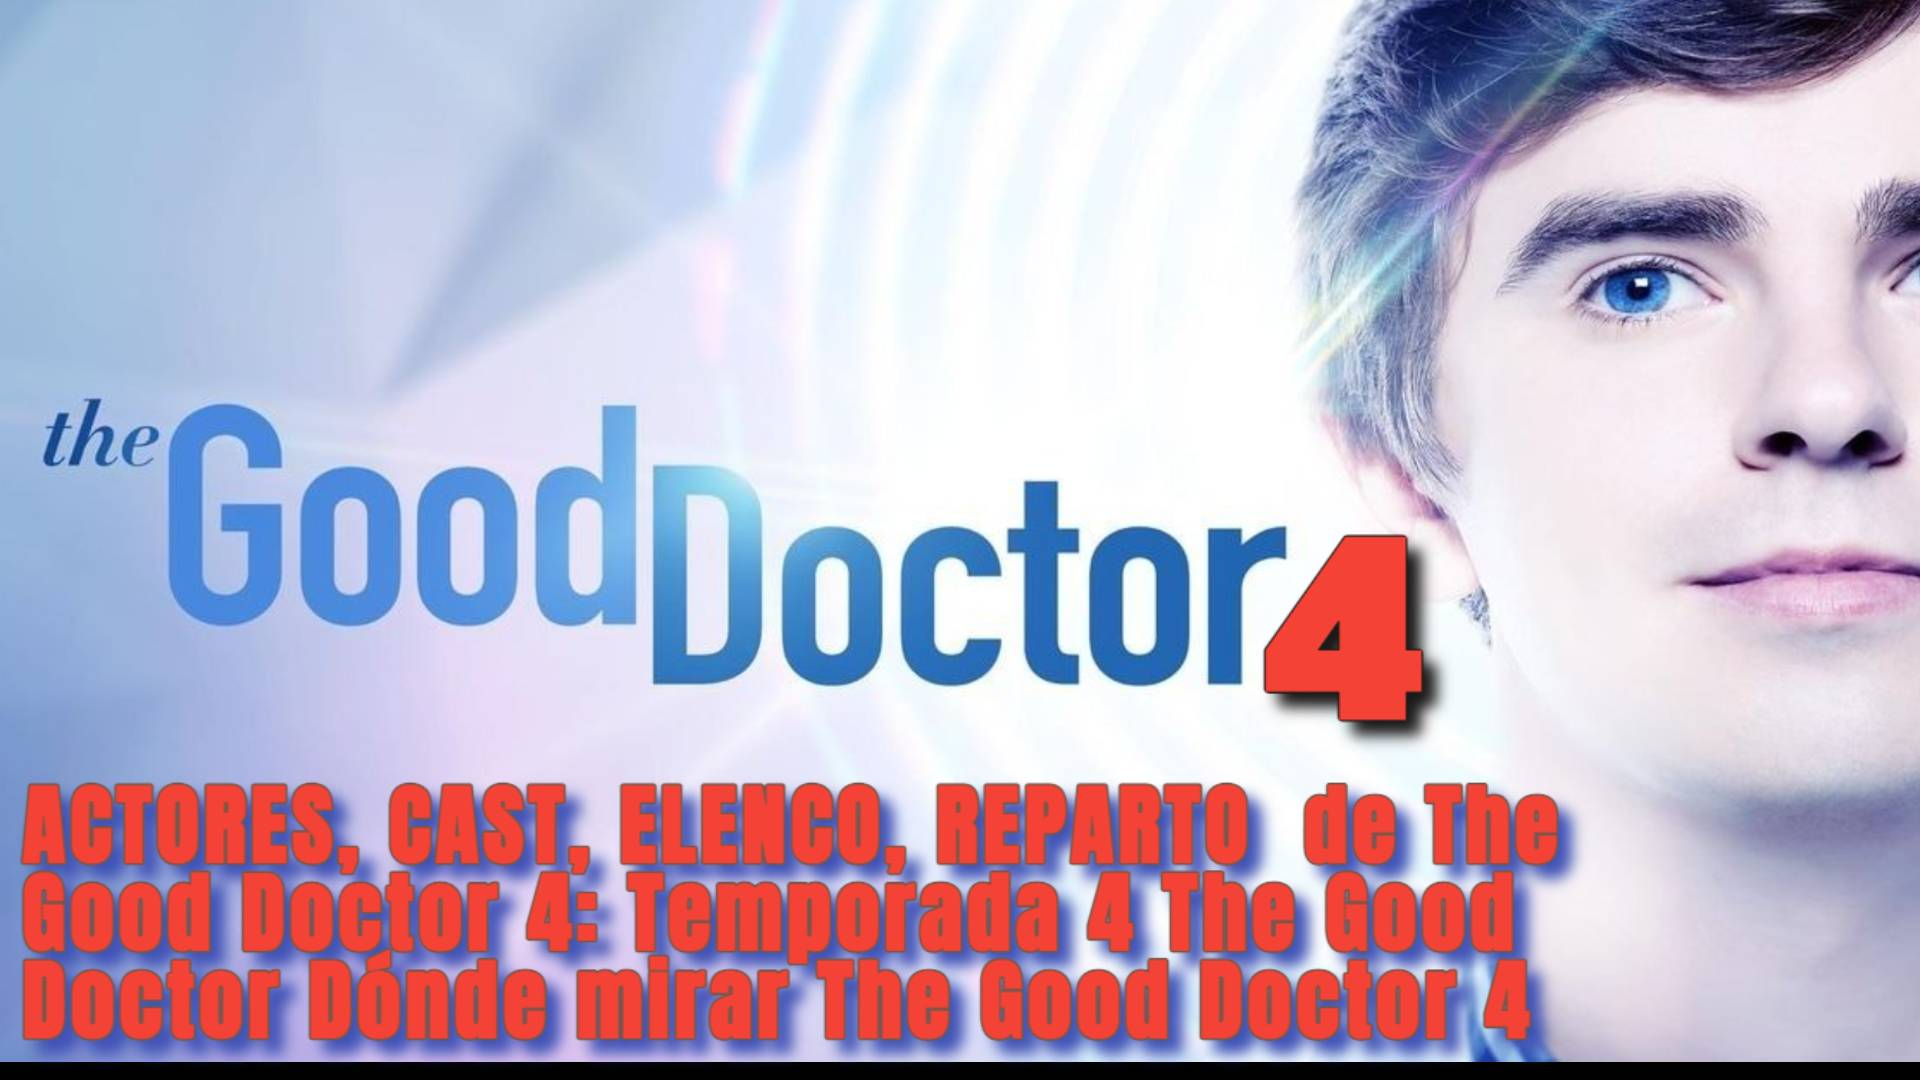 ACTORES, CAST, ELENCO, REPARTO de The Good Doctor 4: Temporada 4 The Good Doctor Dónde mirar The Good Doctor 4